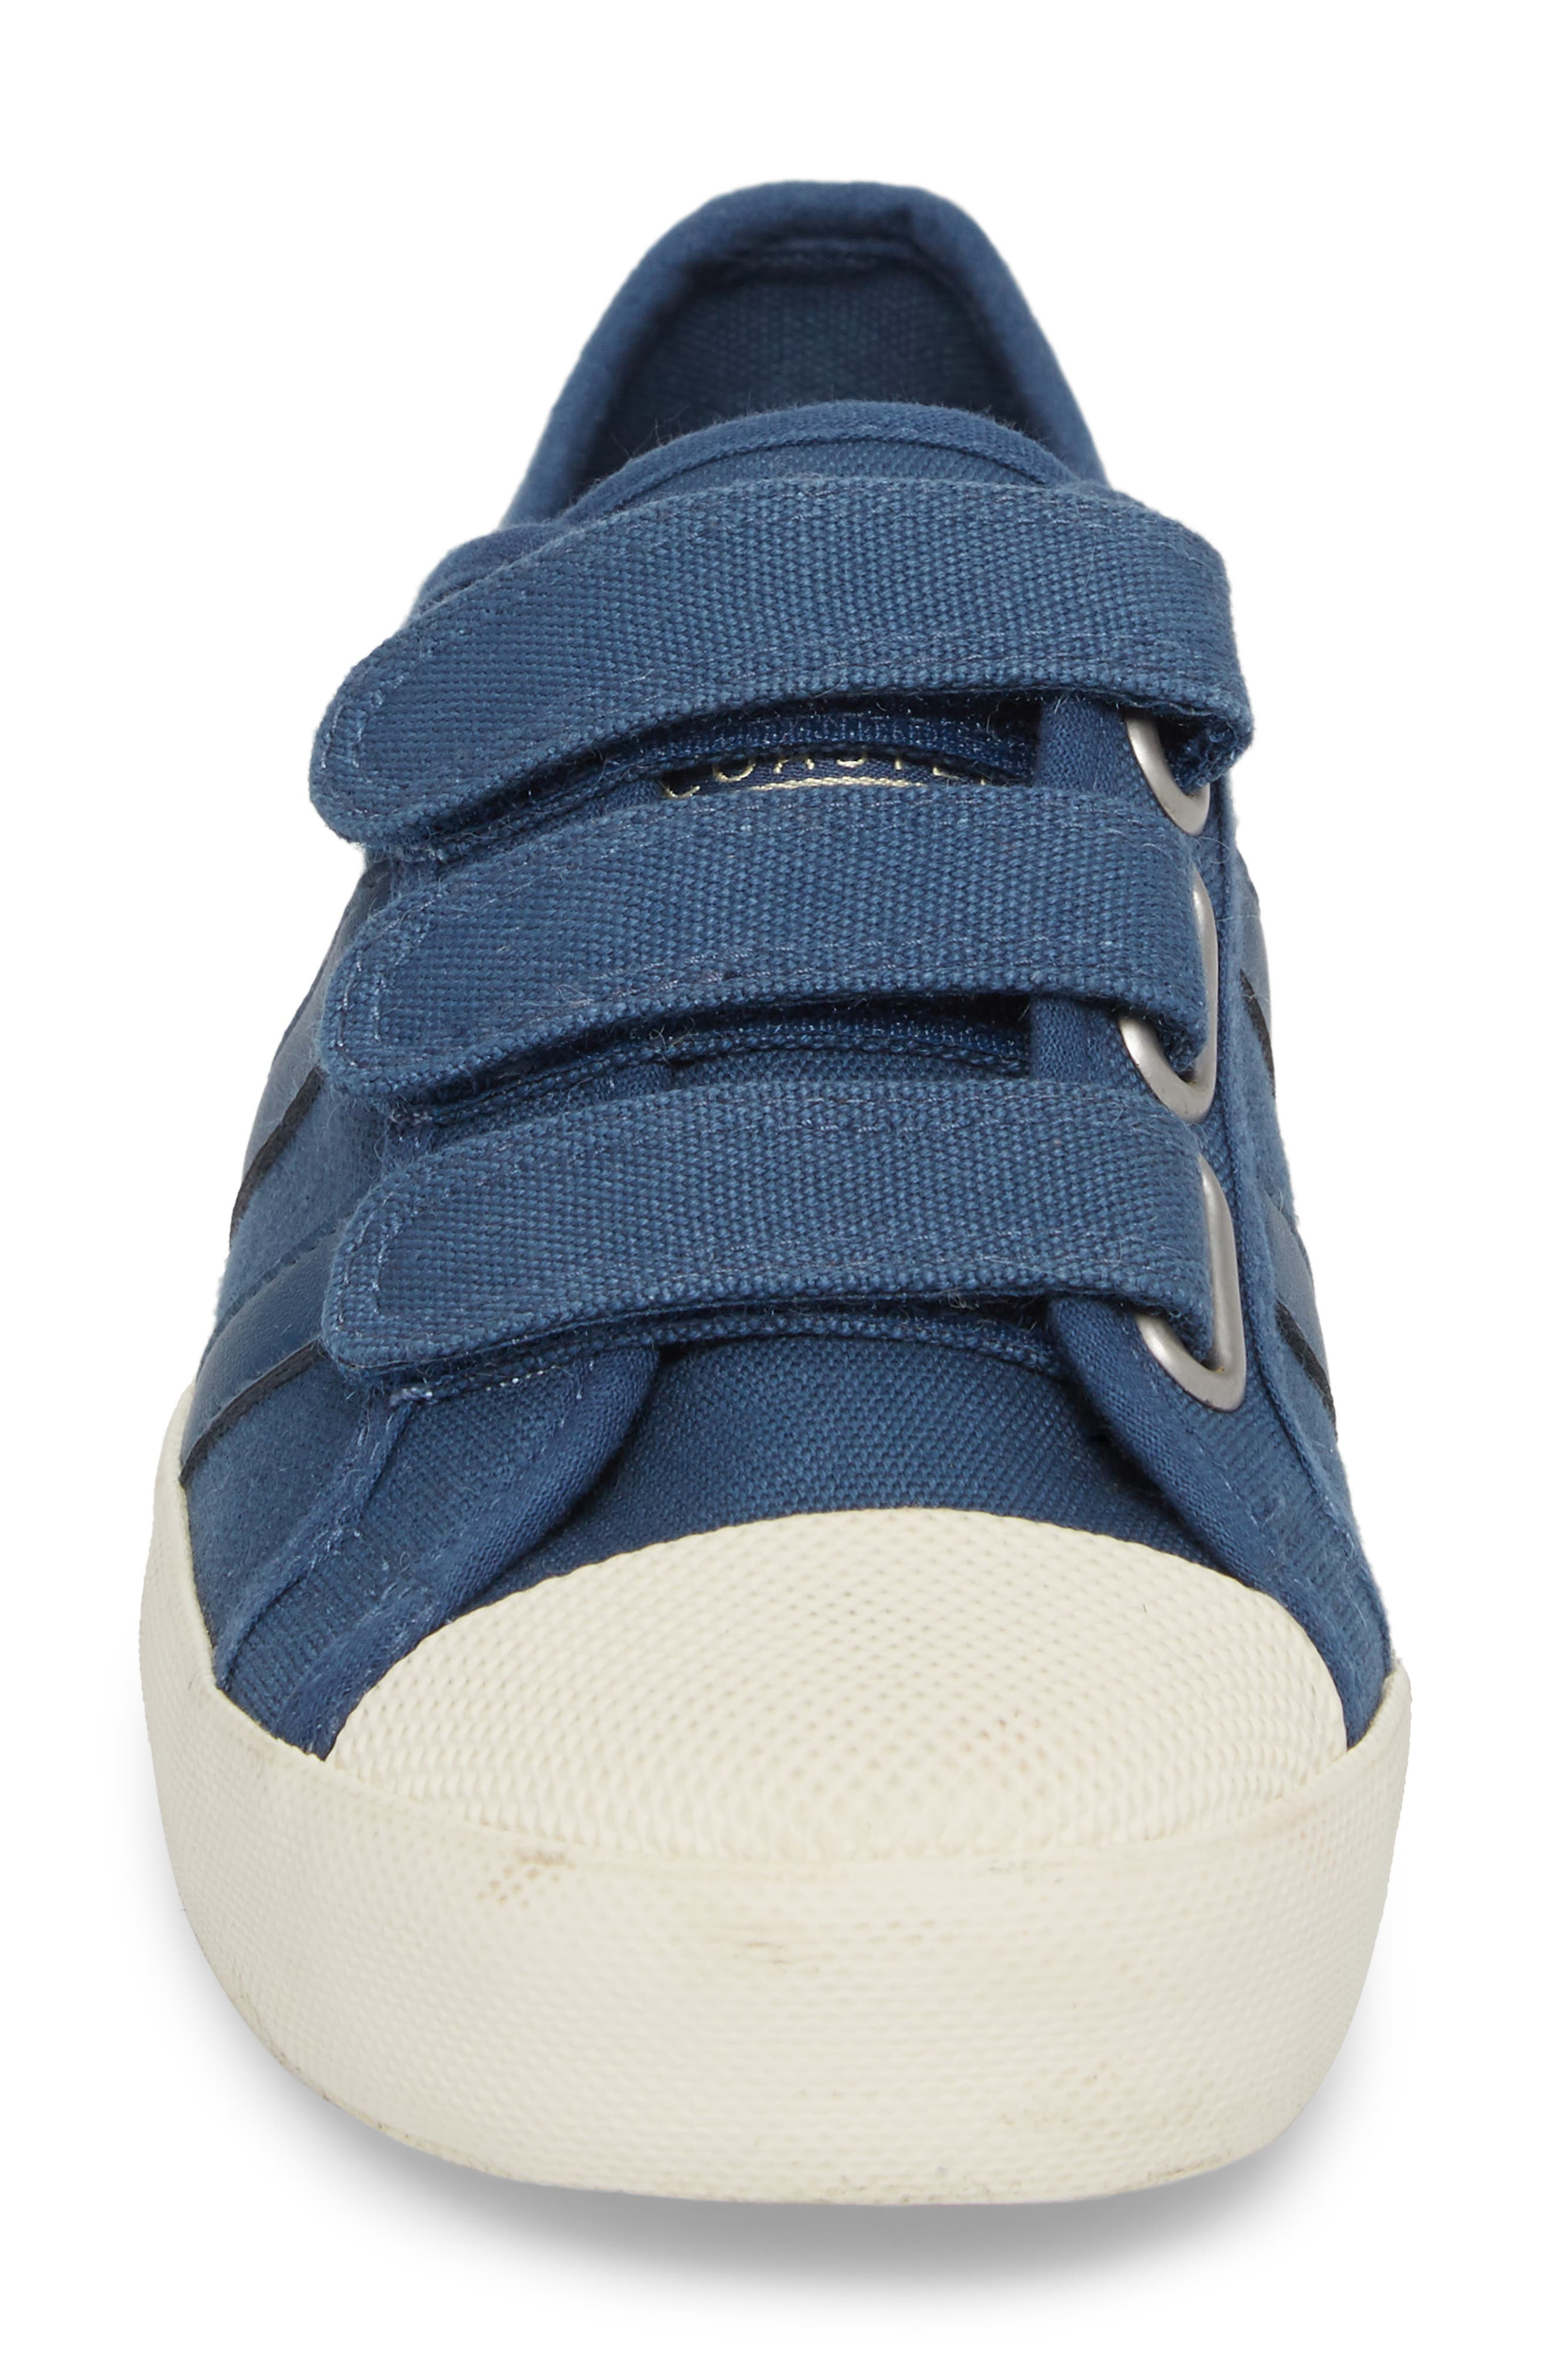 Coaster Low Top Sneaker,                             Alternate thumbnail 4, color,                             Baltic/ Off White